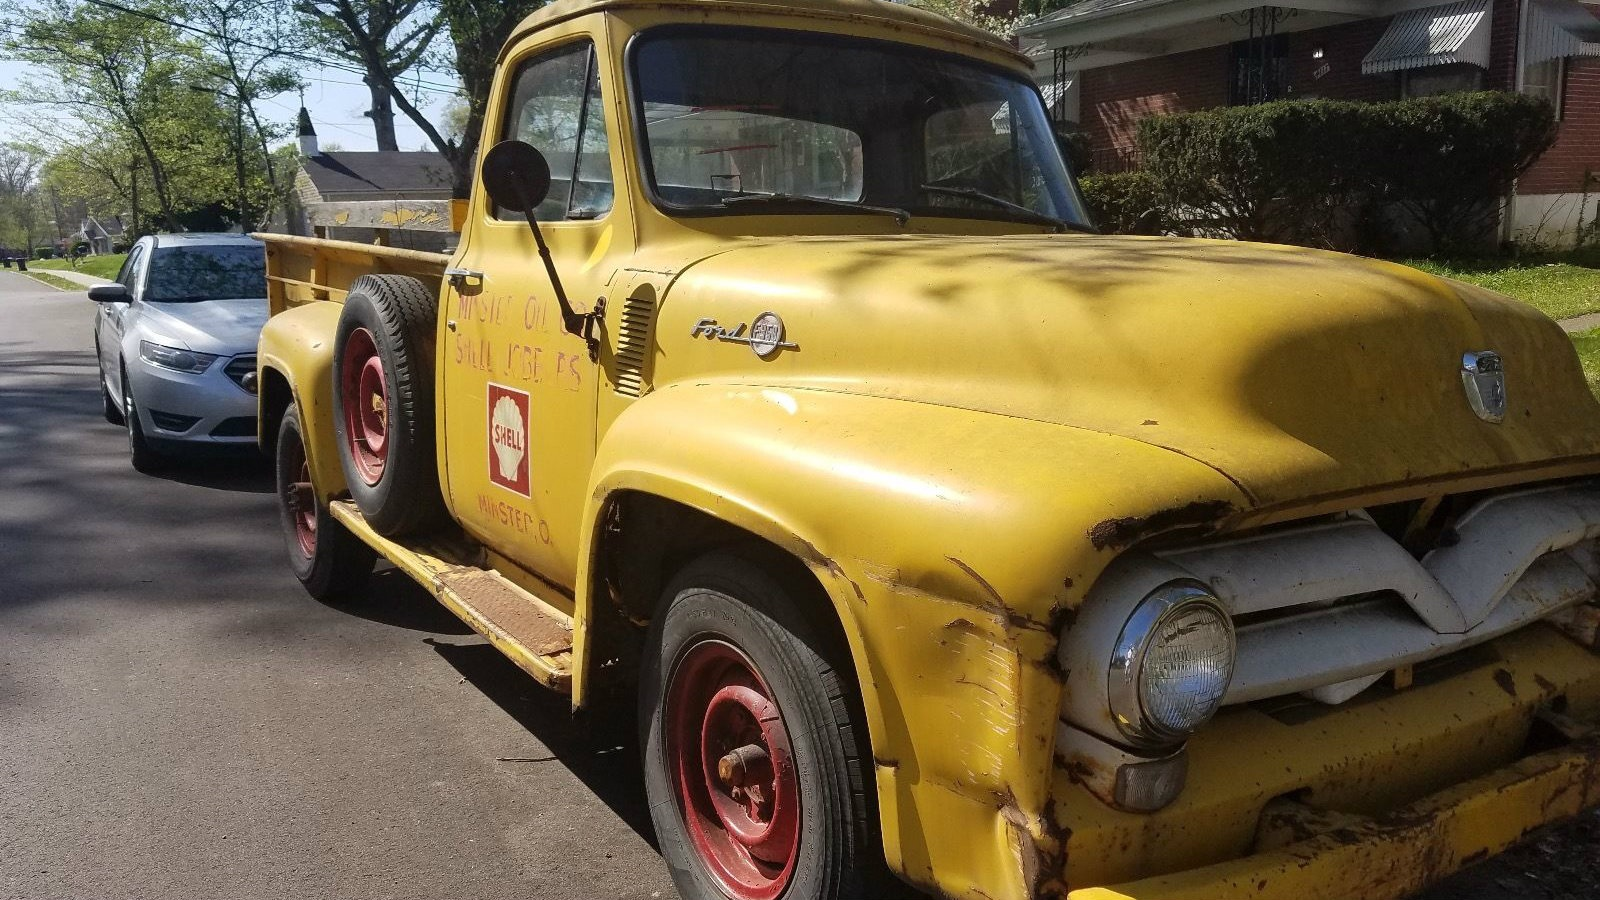 Sure there s a pretty decent dent on this side along with some rust but you just can t find many good old trucks anymore especially for this kind of